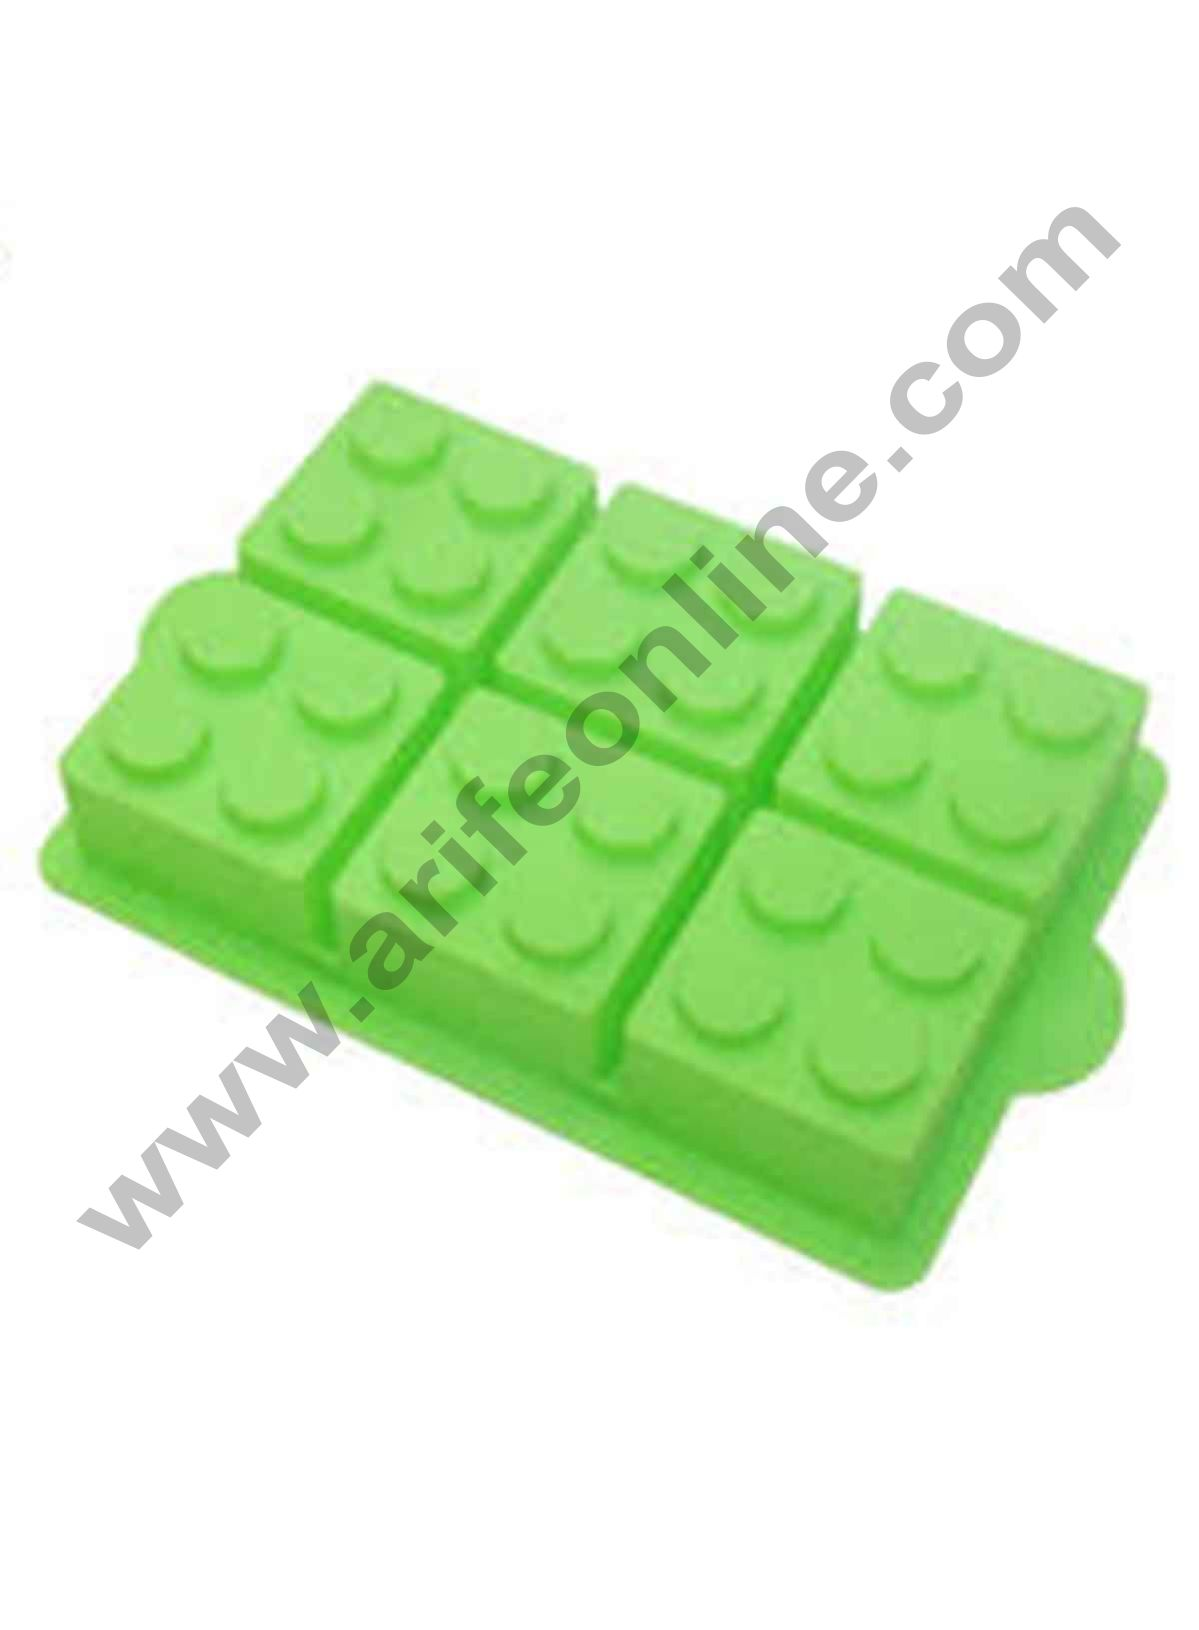 Cake Decor Silicone Brick Blocks Building Shape Cake Decorating Tool Ice Cube Mold Party,Dessert Pastry Soap and Muffin Baking Moulds